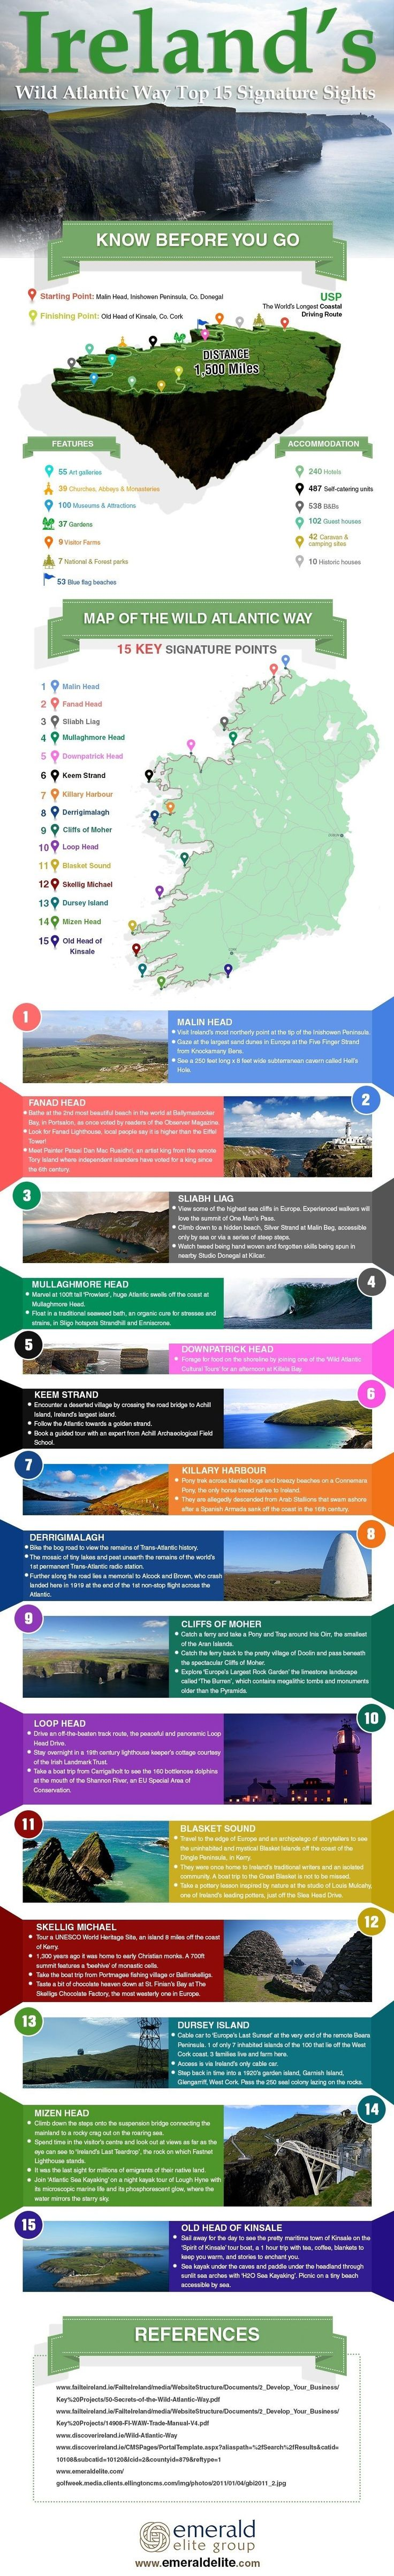 Really cool infographic guide to Ireland's Wild Atlantic Way- I WILL do make this trip one day!